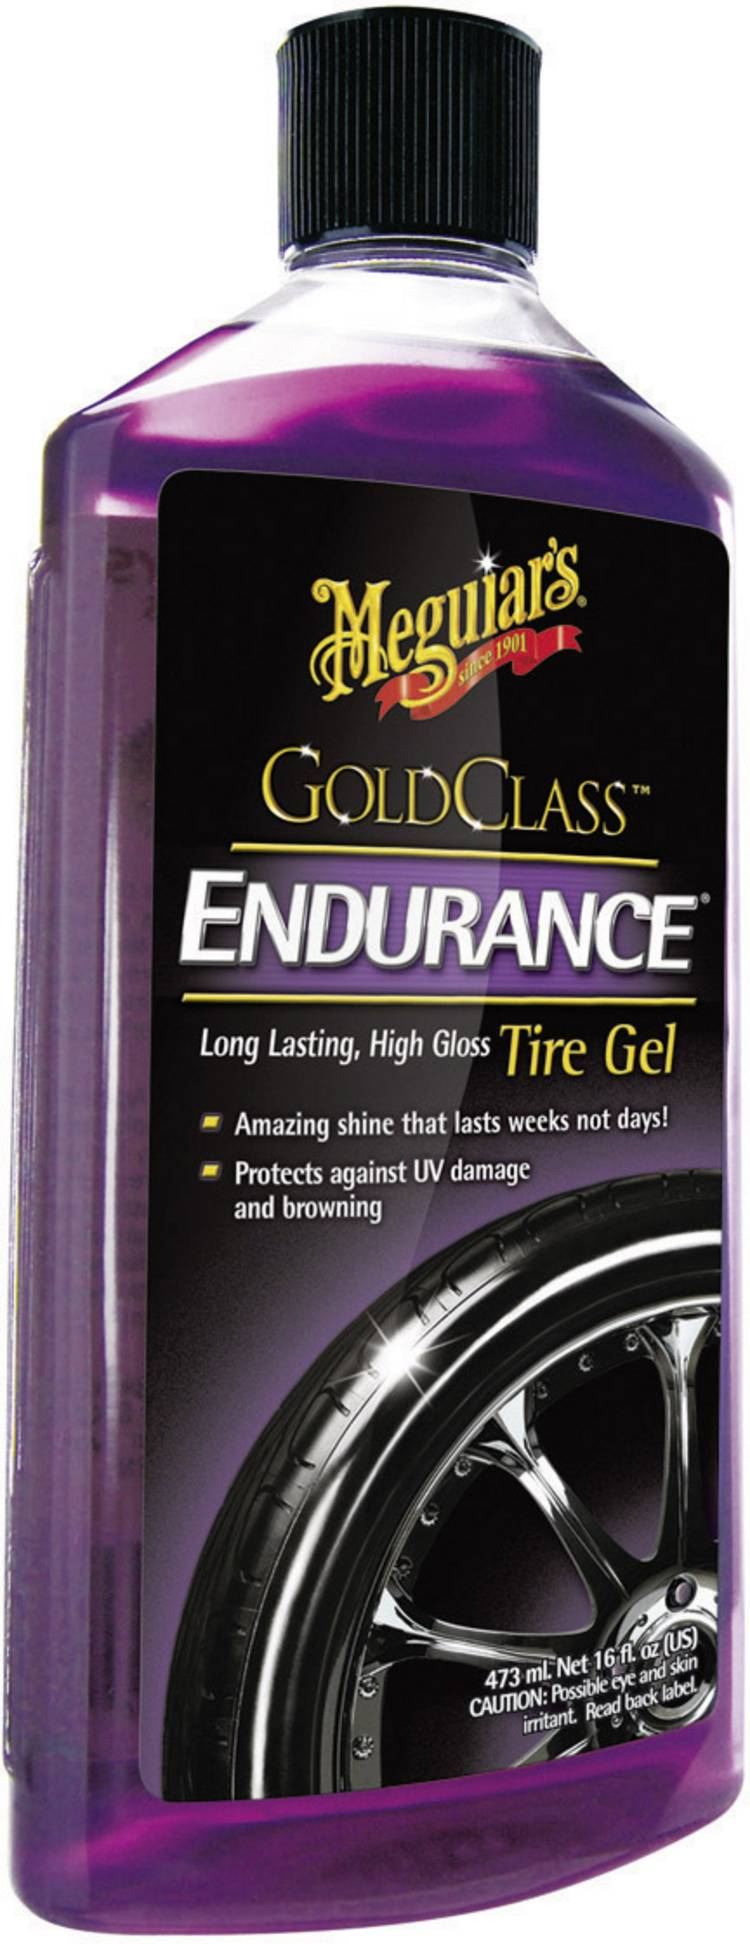 Image of Meguiars Endurance High Gloss Tire Gel 650007 473 ml